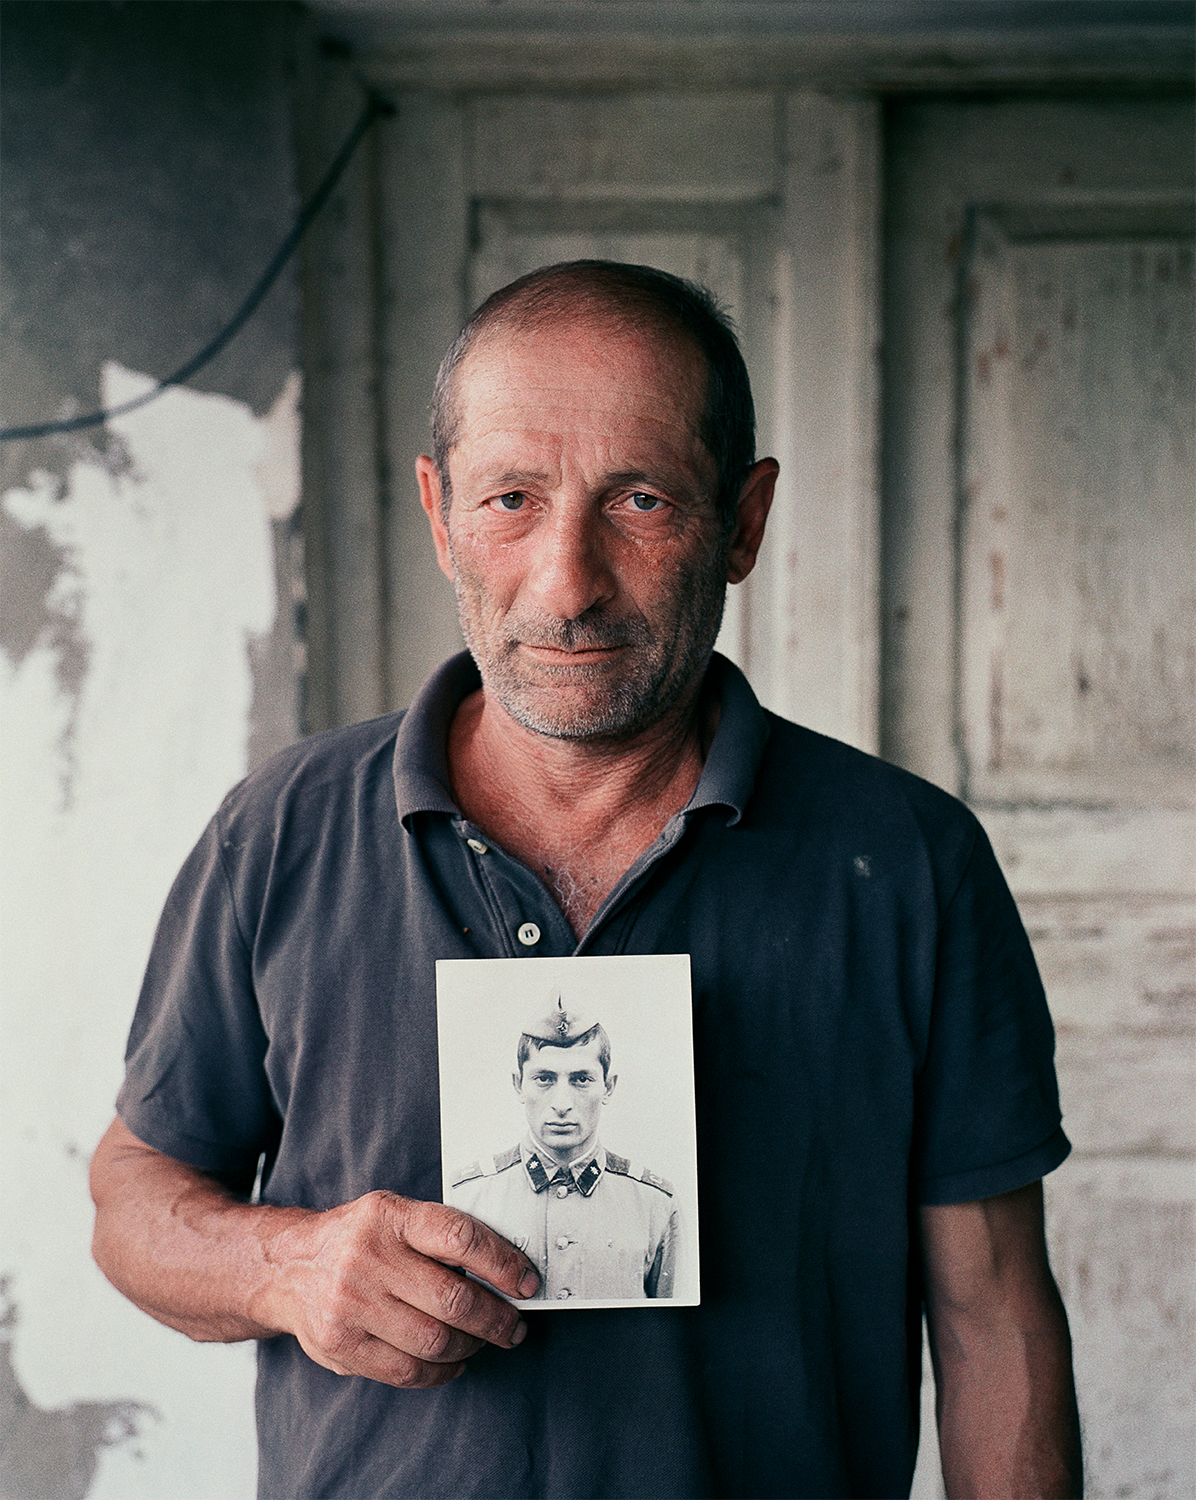 Steffen Junghanß - The Invisible Border old man holding photo of him as a child